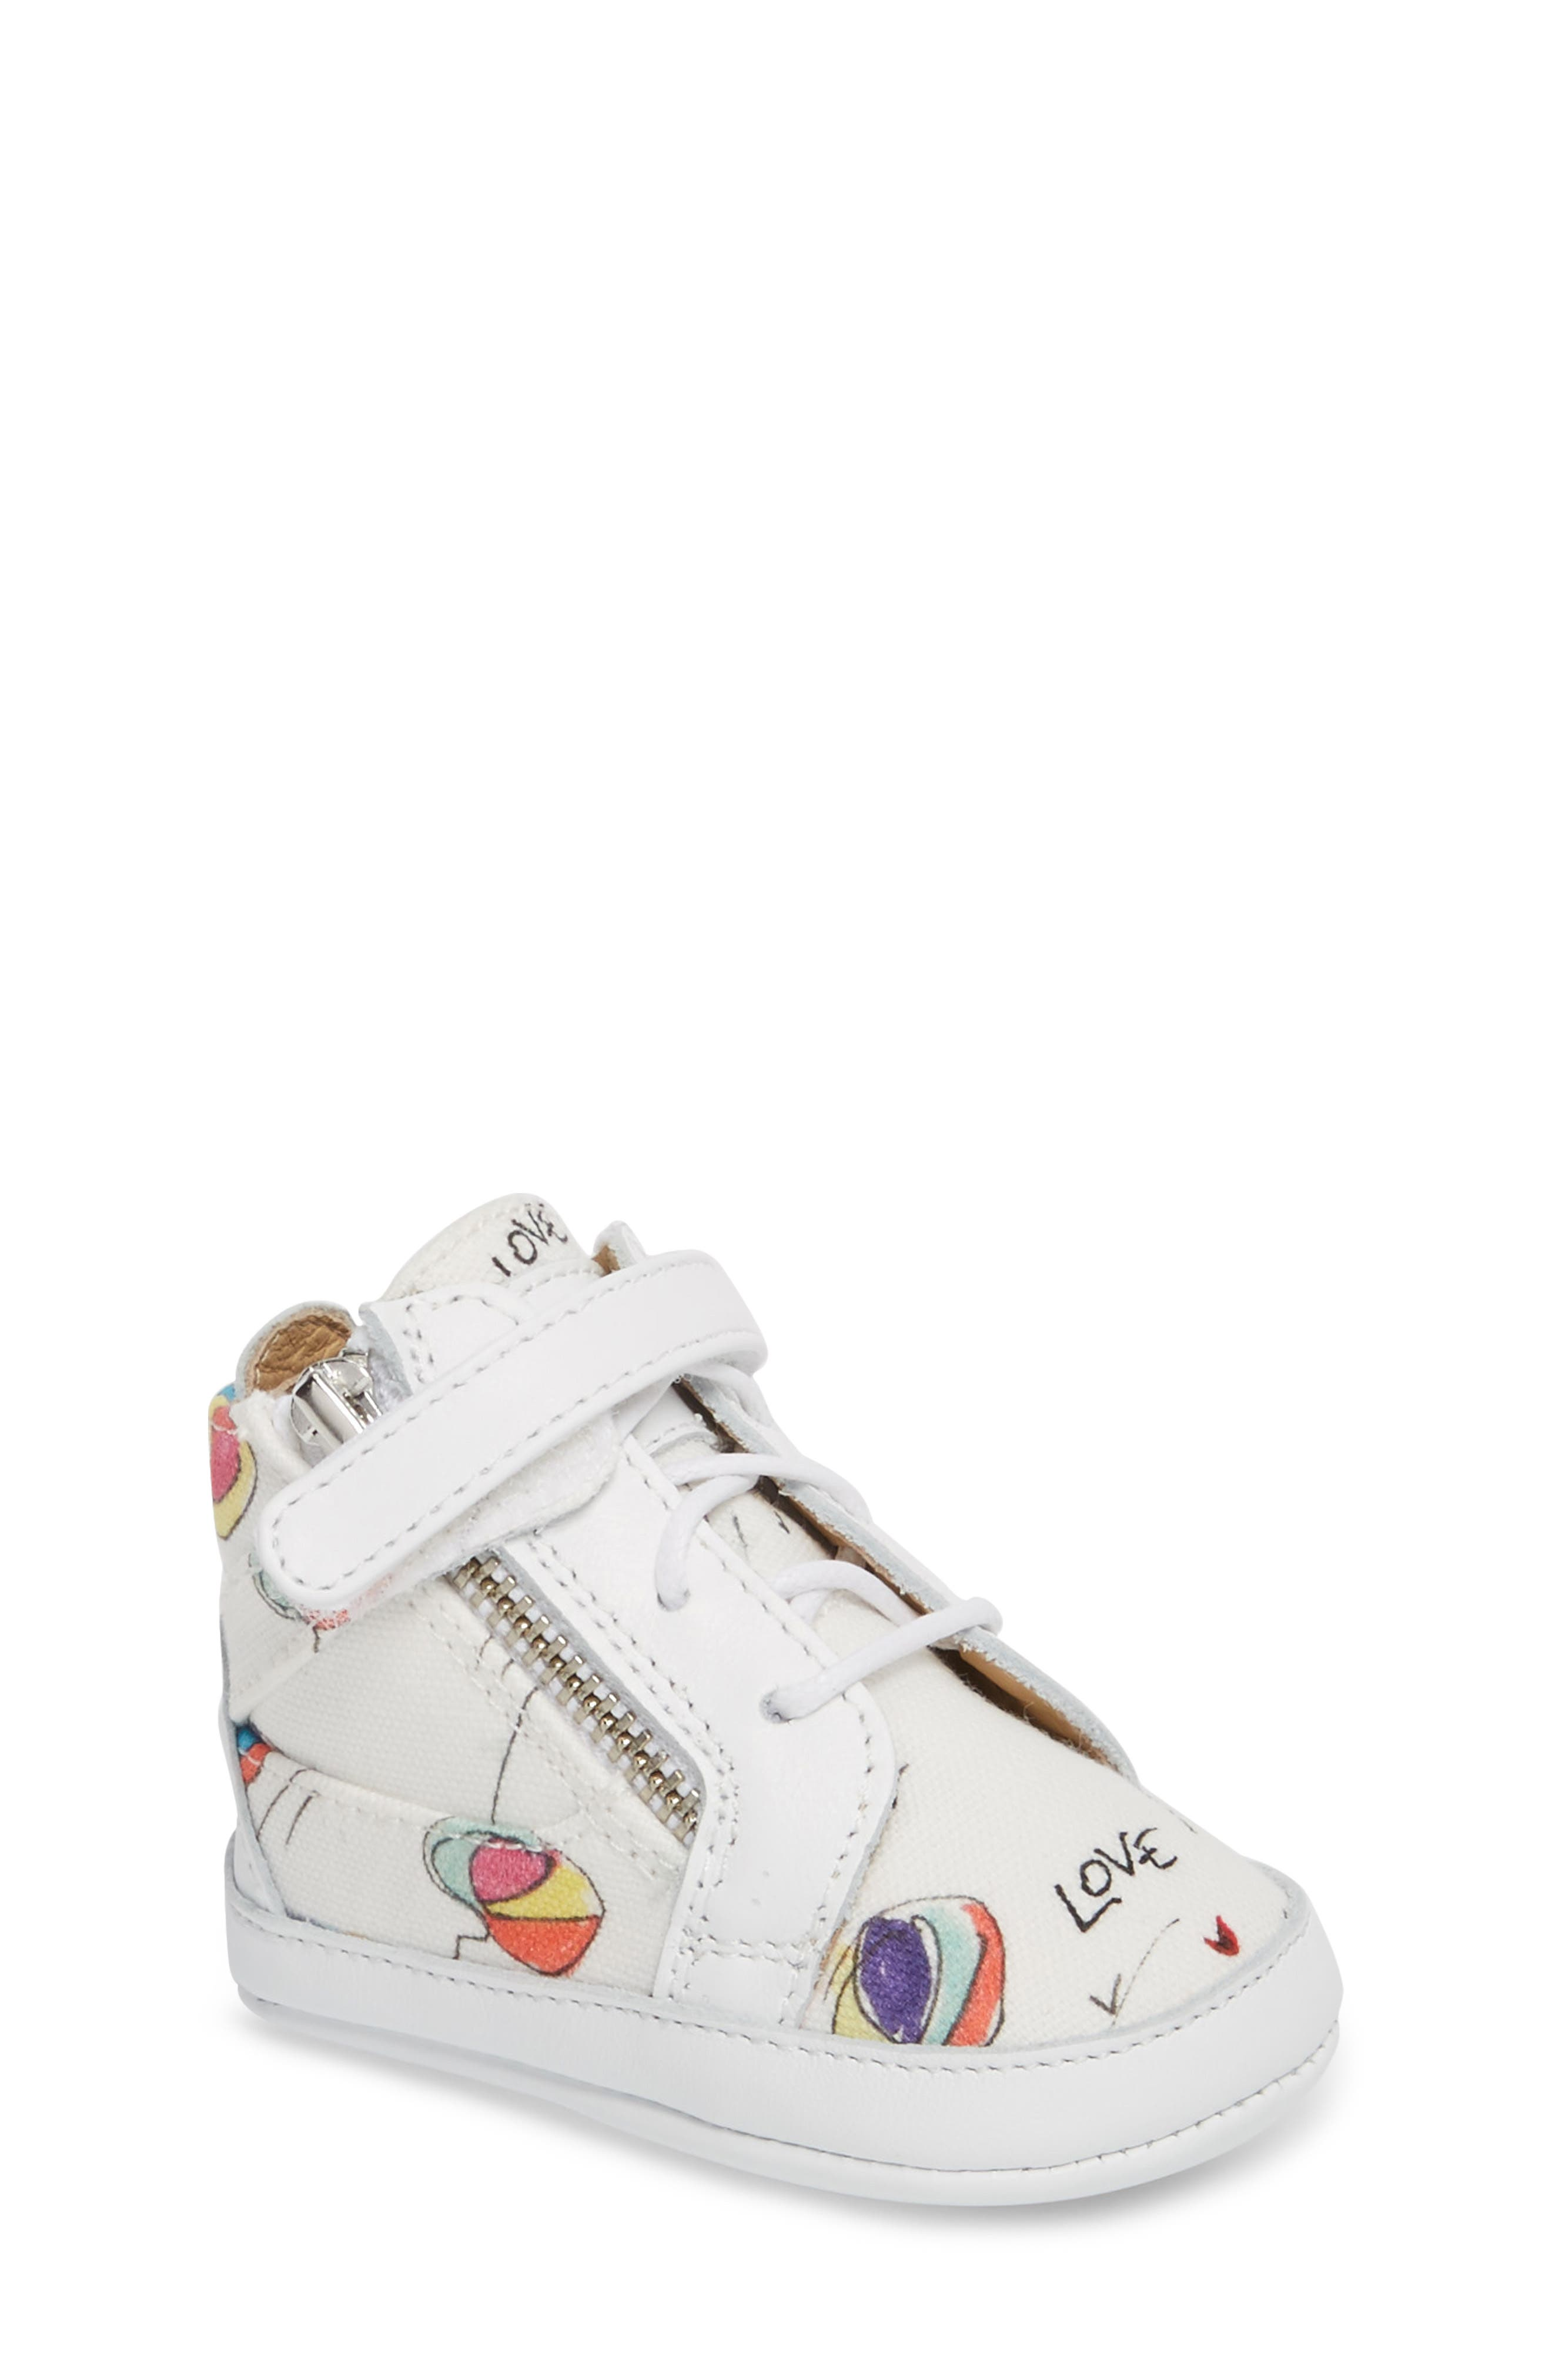 Culla London High Top Crib Sneaker,                             Main thumbnail 2, color,